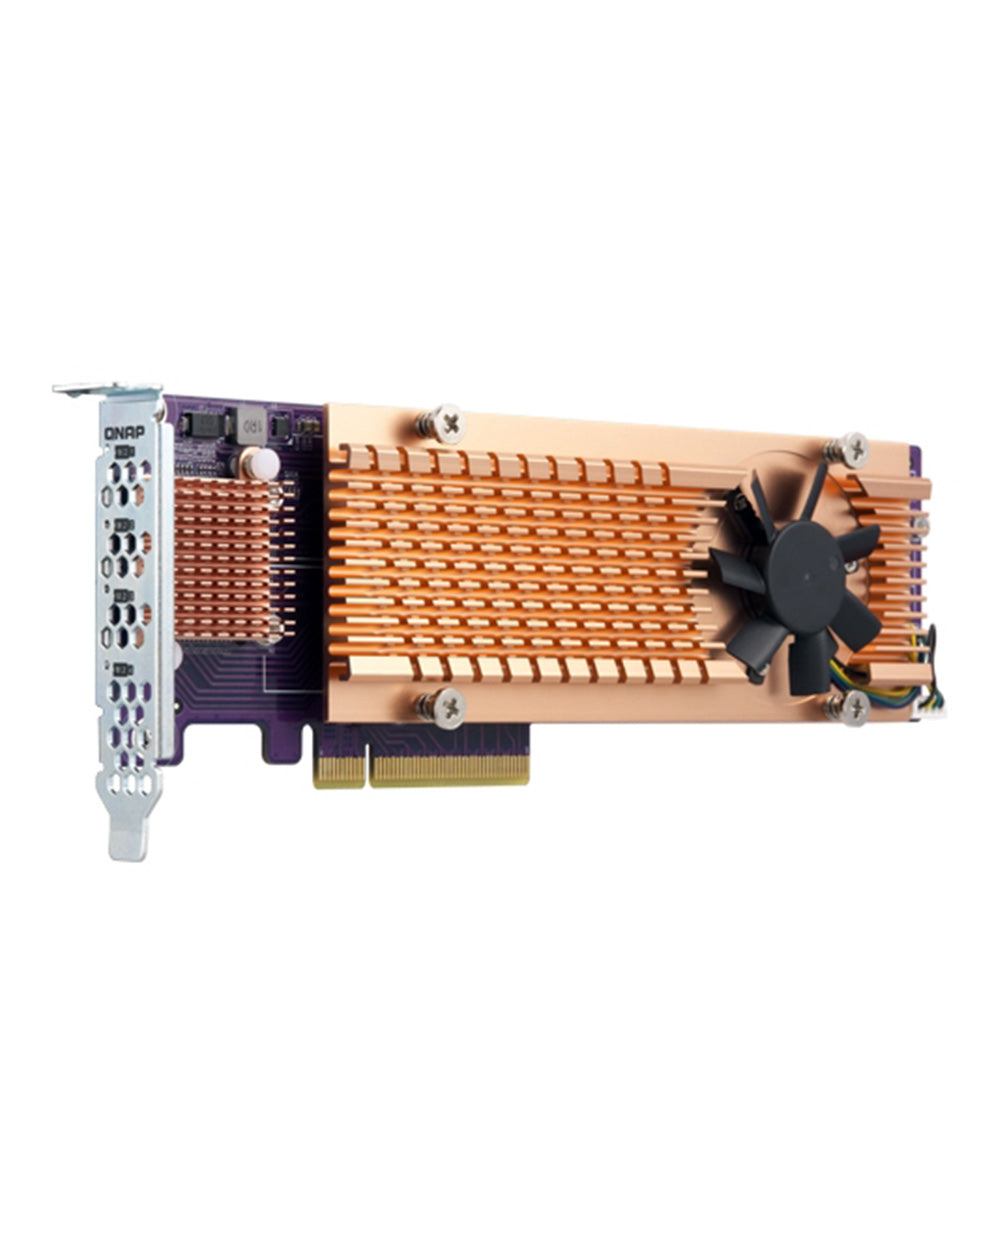 Add a QNAP QM2-4P-384 Quad M.2 2280 PCIe to your NAS for only $269.00 from $269.00